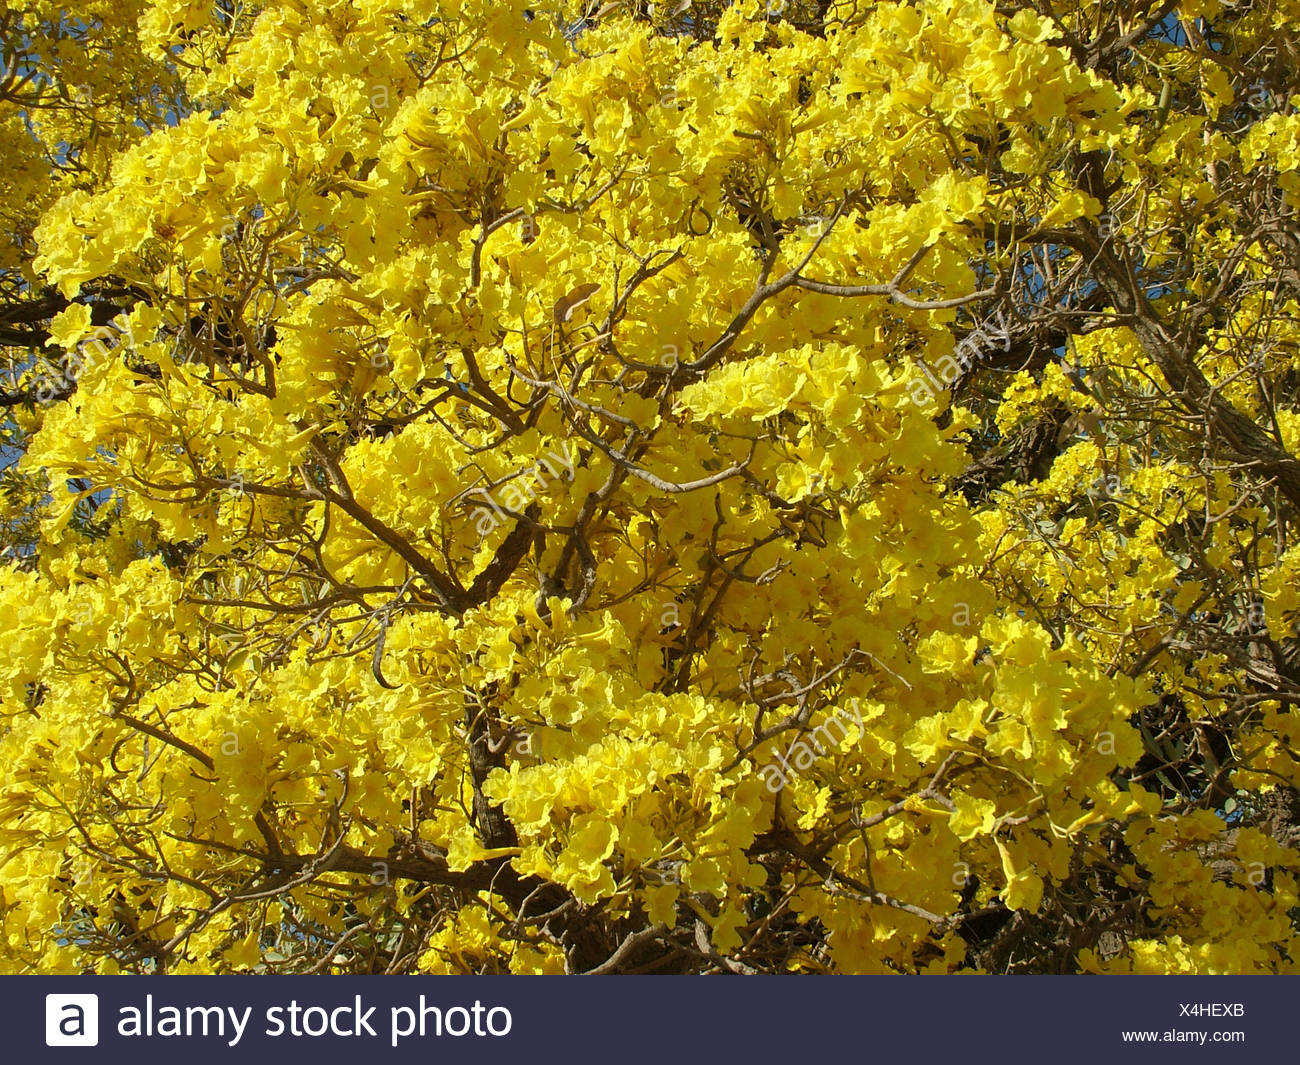 Close-up of the unbelievable mass of the yellow flowers of the Trumpet tree (Tabebuia caraiba), Gran Chaco, Paraguay - Stock Image